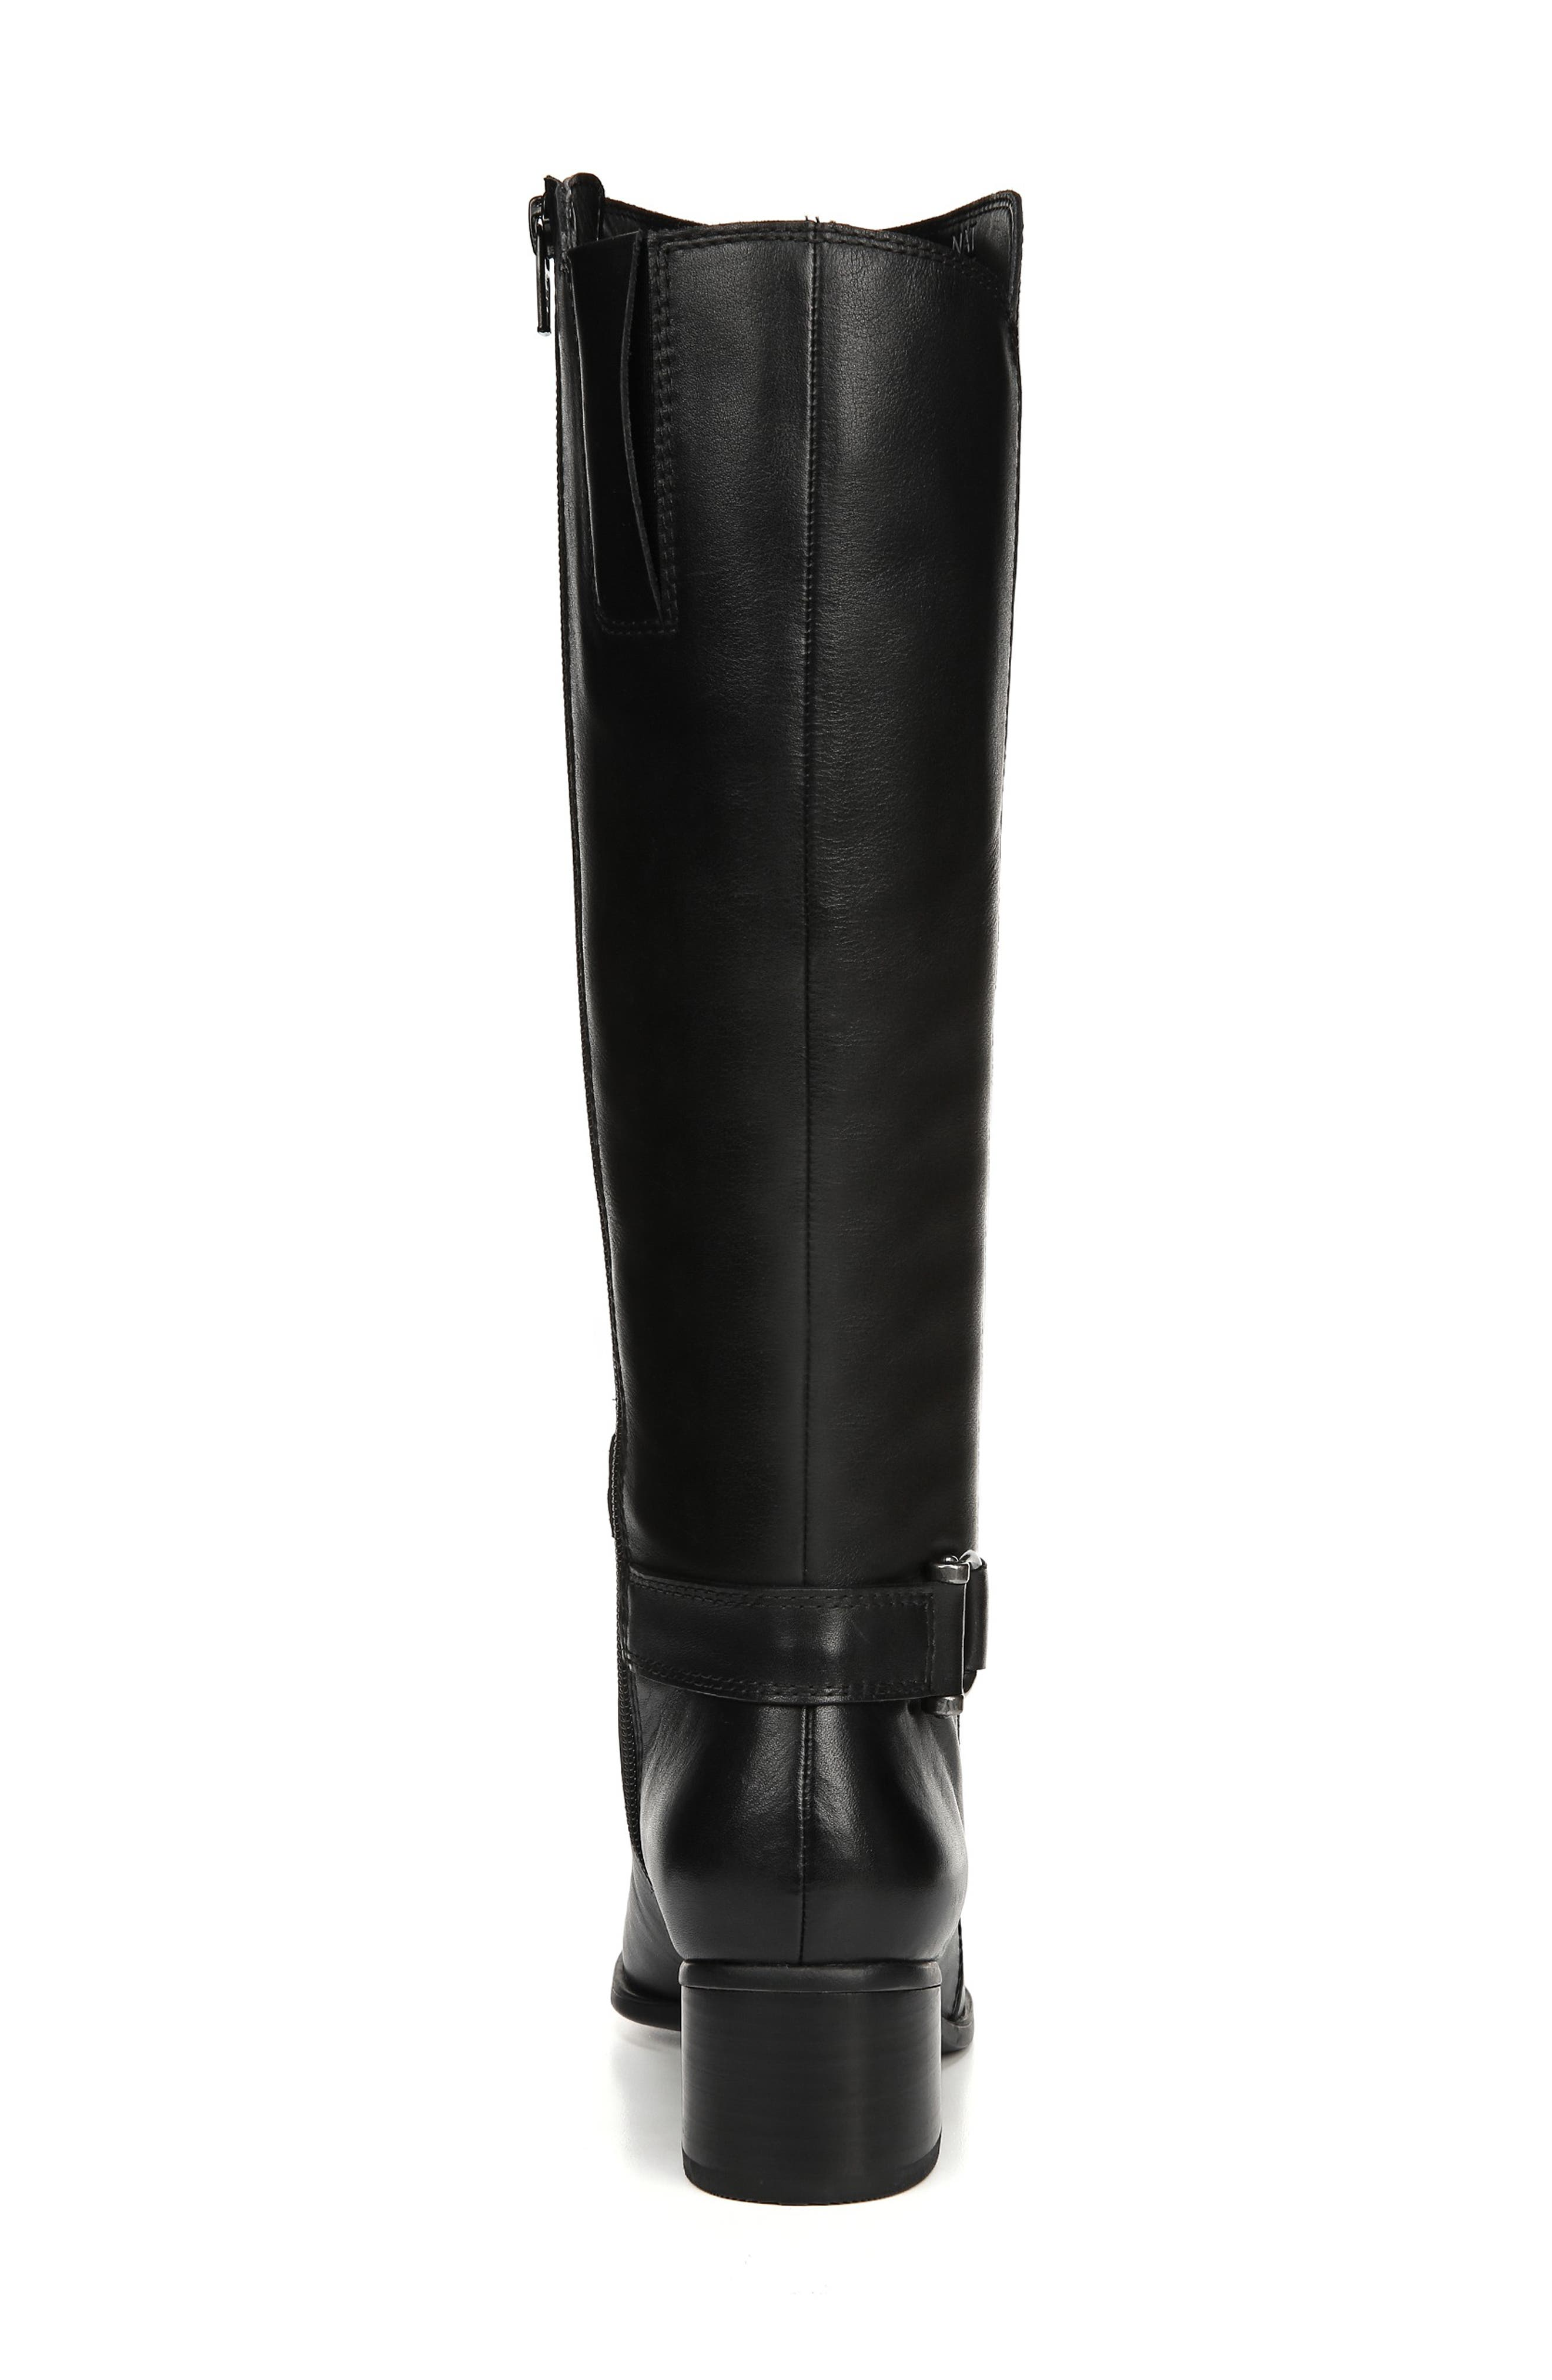 NATURALIZER, Dane Knee High Riding Boot, Alternate thumbnail 7, color, BLACK LEATHER